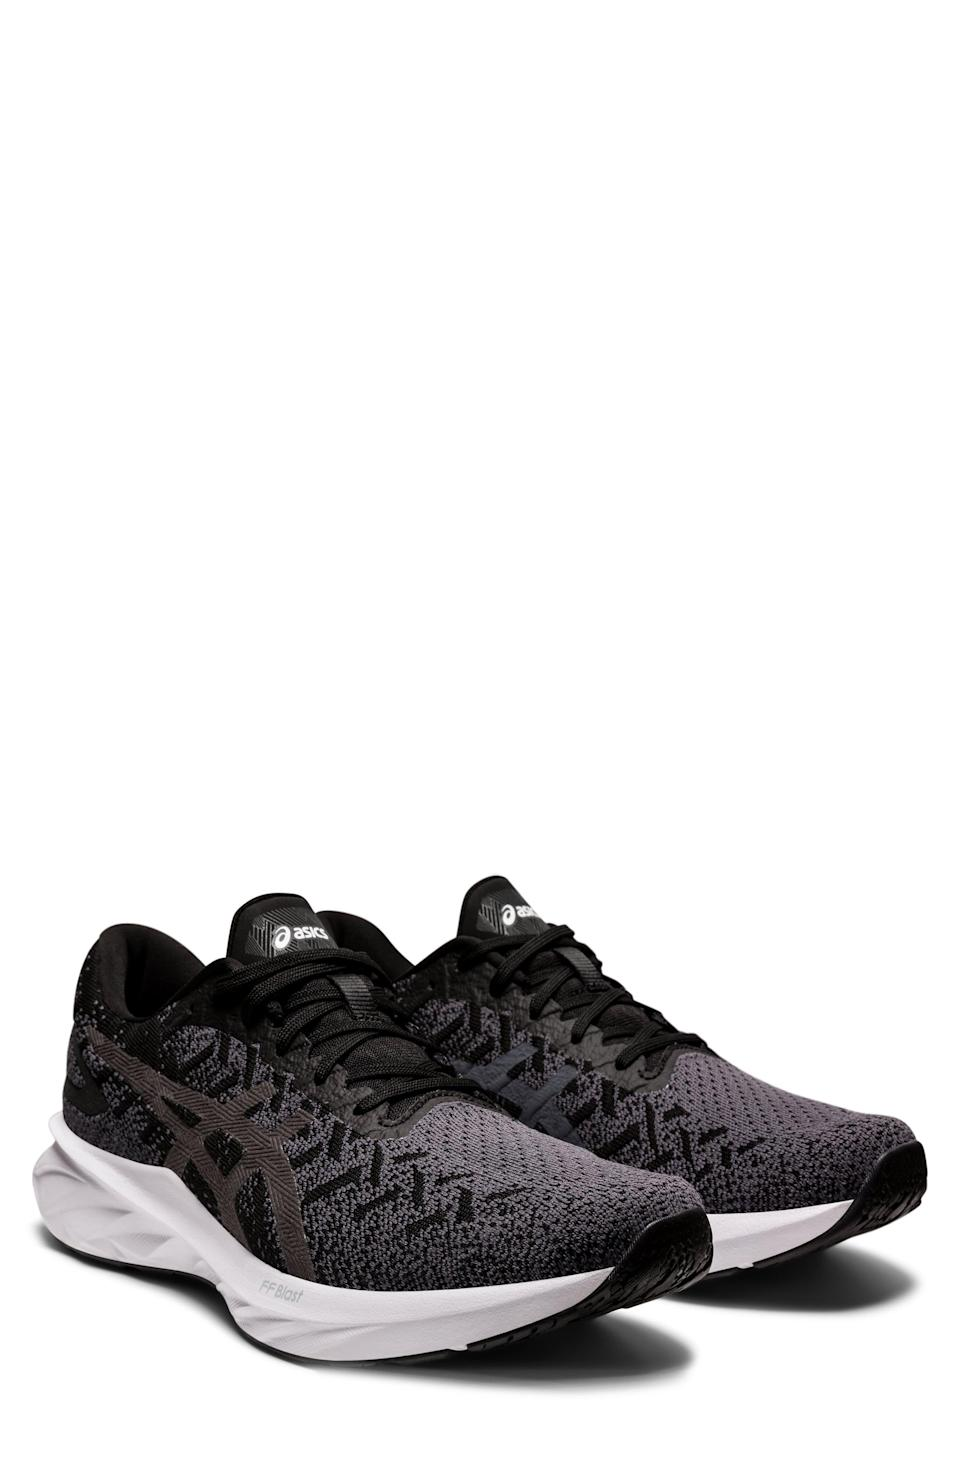 """<p><strong>ASICS</strong></p><p>nordstrom.com</p><p><a href=""""https://go.redirectingat.com?id=74968X1596630&url=https%3A%2F%2Fwww.nordstrom.com%2Fs%2Fasics-dynablast-2-running-shoe-men%2F5794664&sref=https%3A%2F%2Fwww.menshealth.com%2Fstyle%2Fg37081969%2Fnordstroms-anniversary-sale-best-sneakers%2F"""" rel=""""nofollow noopener"""" target=""""_blank"""" data-ylk=""""slk:BUY IT HERE"""" class=""""link rapid-noclick-resp"""">BUY IT HERE</a></p><p><del>$110<br></del><strong>$69.90</strong></p><p>The right pair of sneakers can turn your runs into a rocketship-like experience. If you want to bring some of that extraterrestrial magic to the track or treadmill, check out ASICS' Dynablast, which features the ultra-bouncy FlyteFoam Blast cushioning. </p>"""